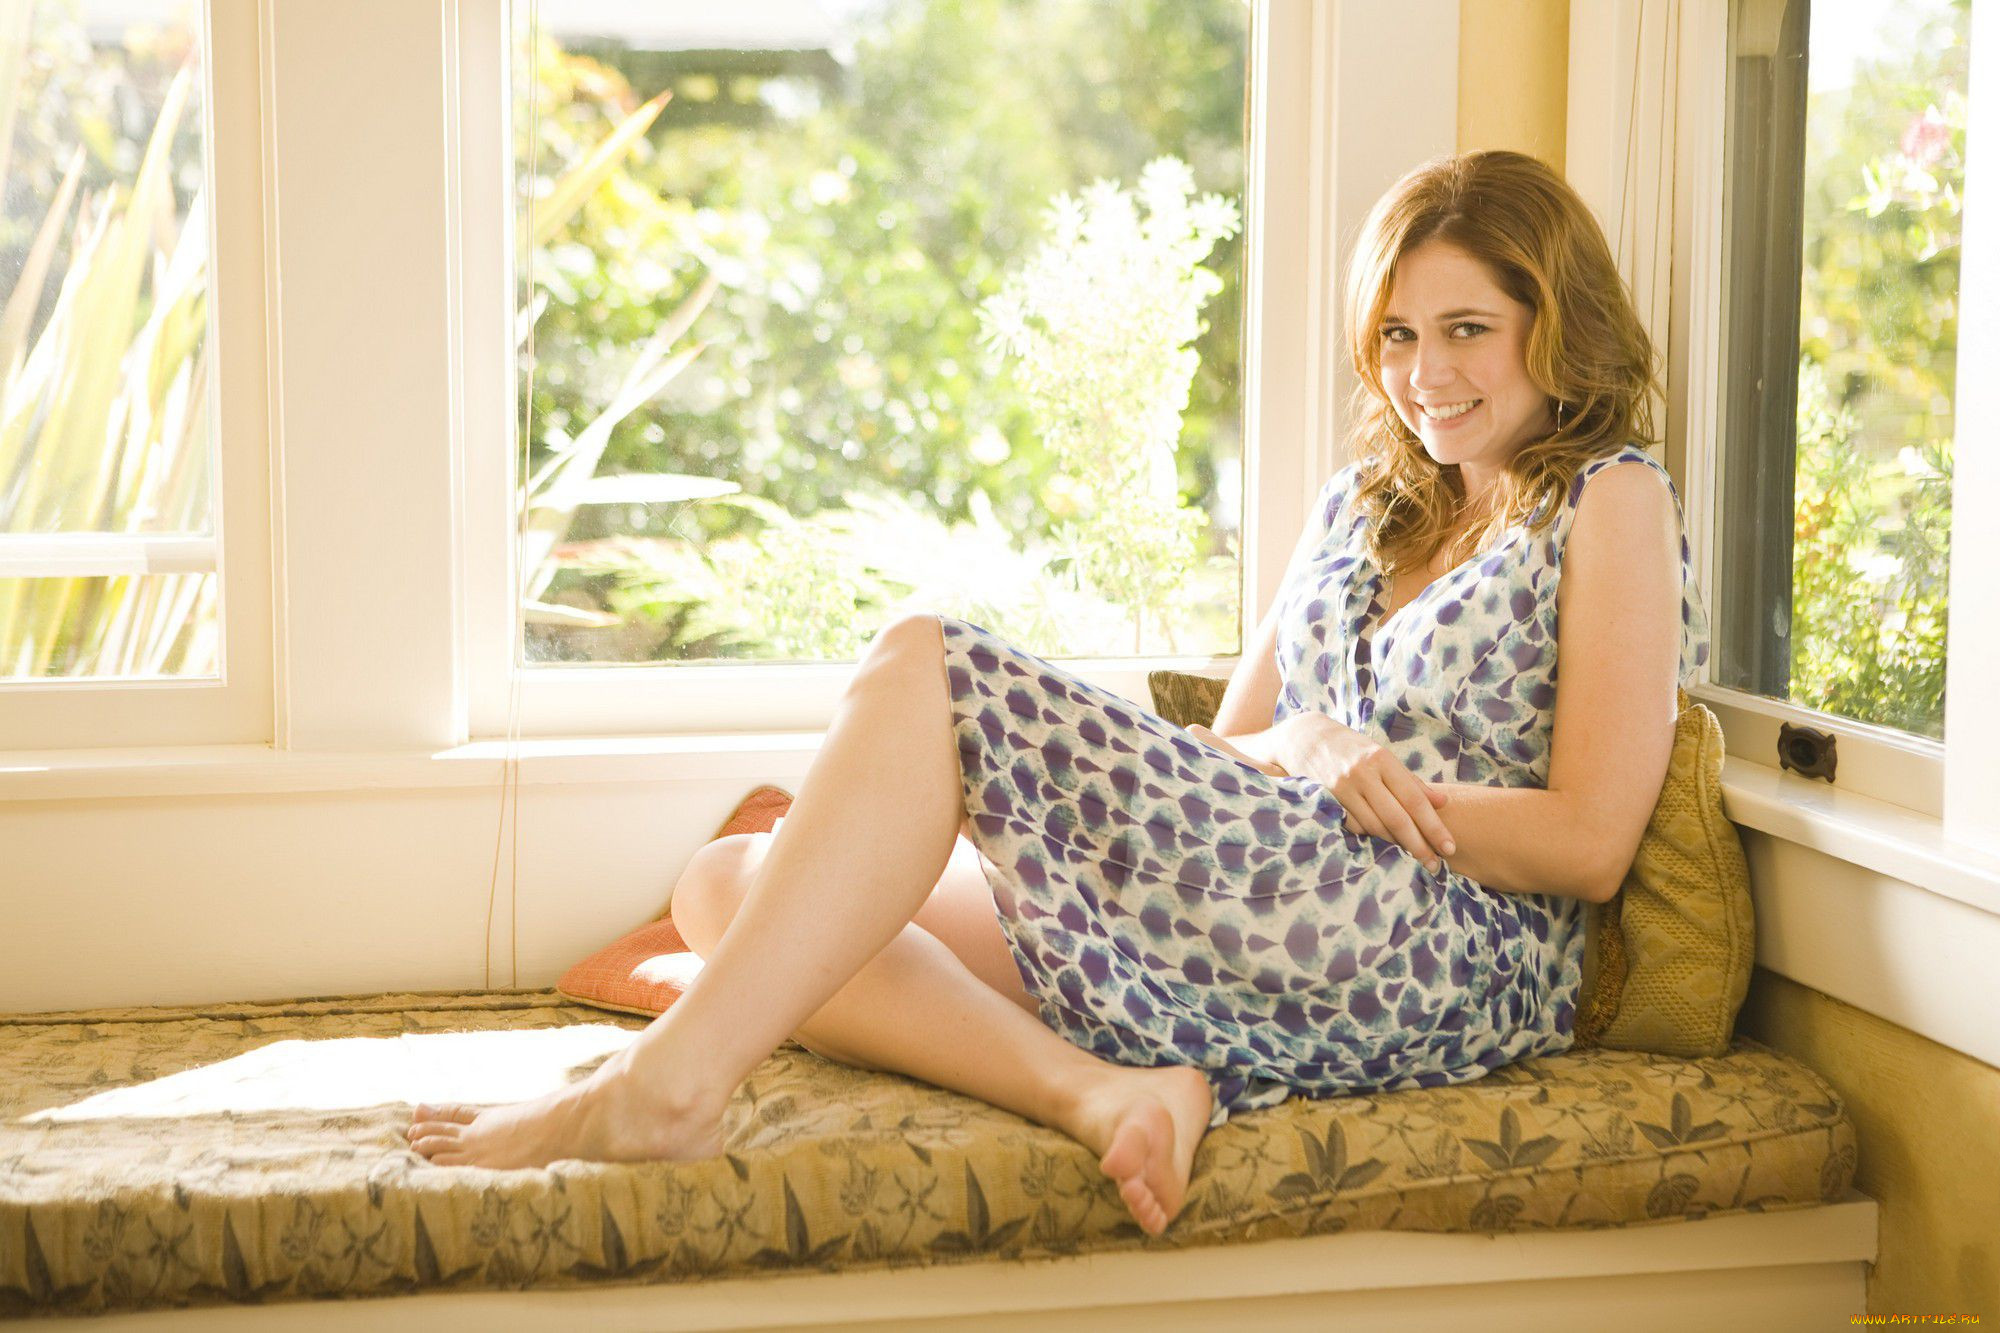 Sexy and hot jenna fischer pictures bikini, ass, boobs celebrityphotocuts